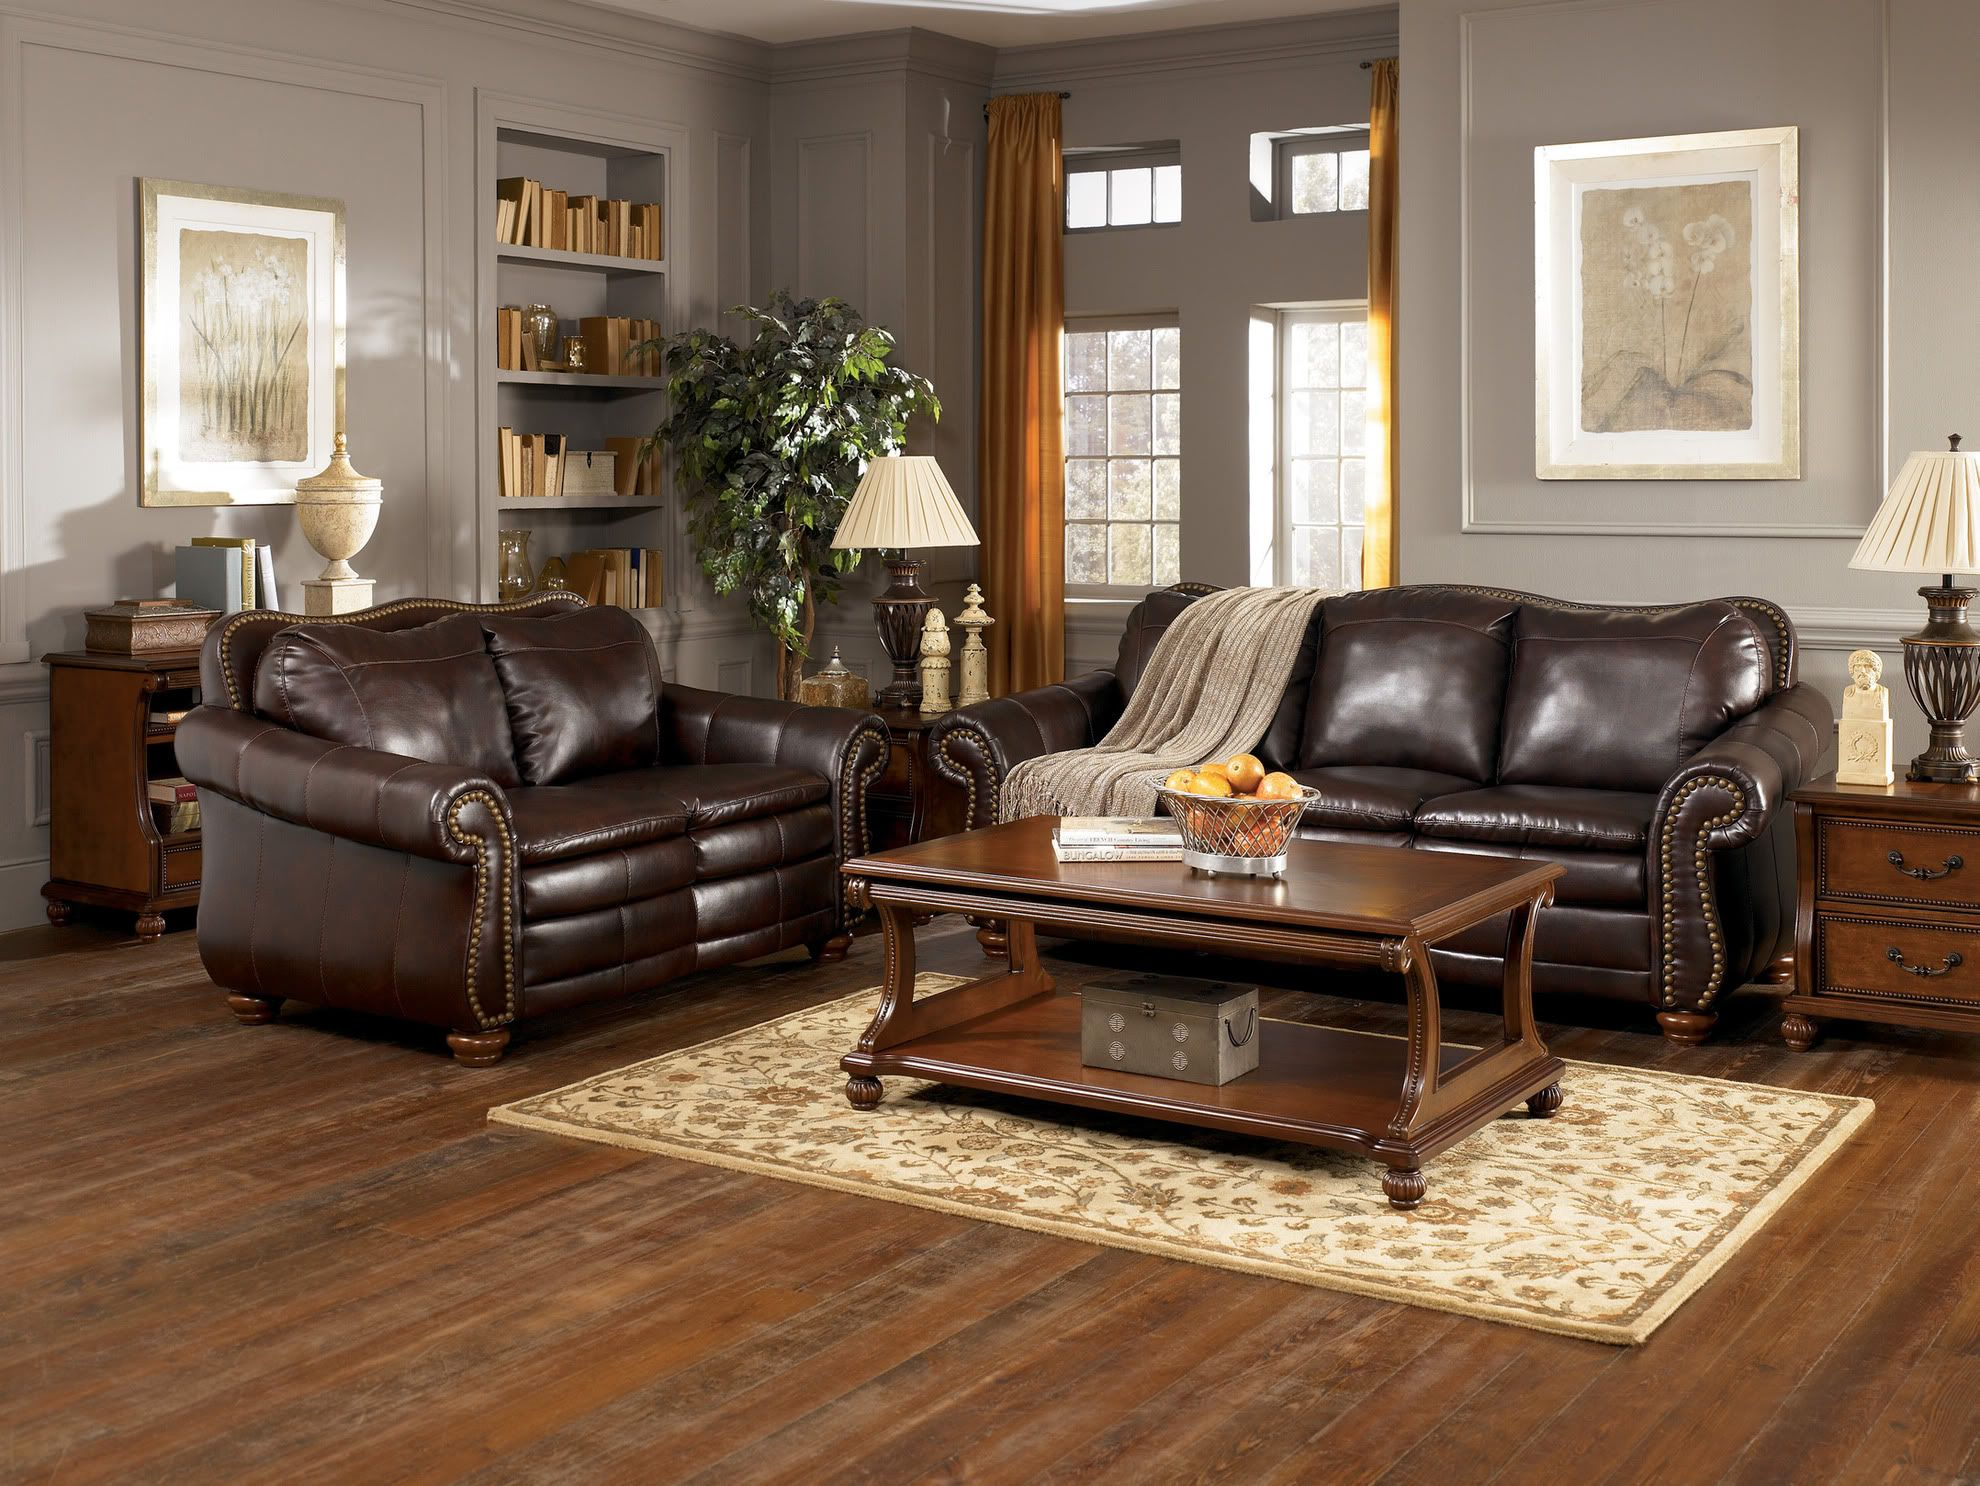 Rustic Grey Living Room Design Ideas And Furniture Layouts Discover Design Inspiration F Brown Furniture Living Room Brown Living Room Decor Brown Living Room